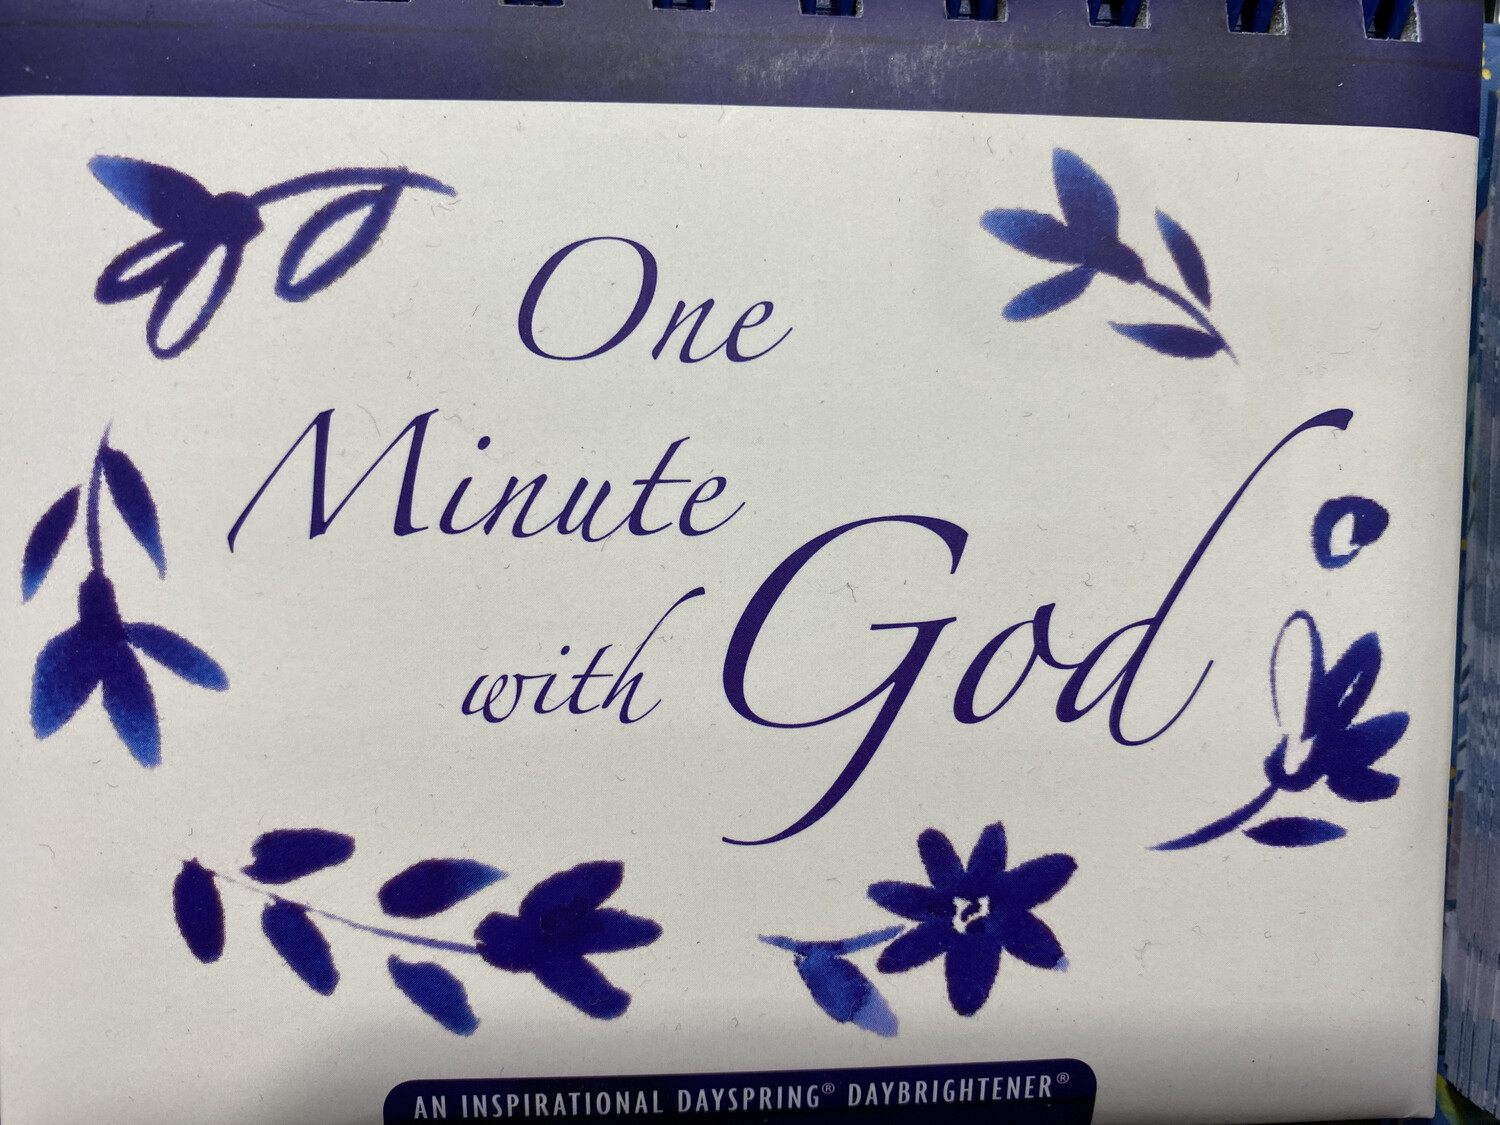 DayBrightener One Minute With God